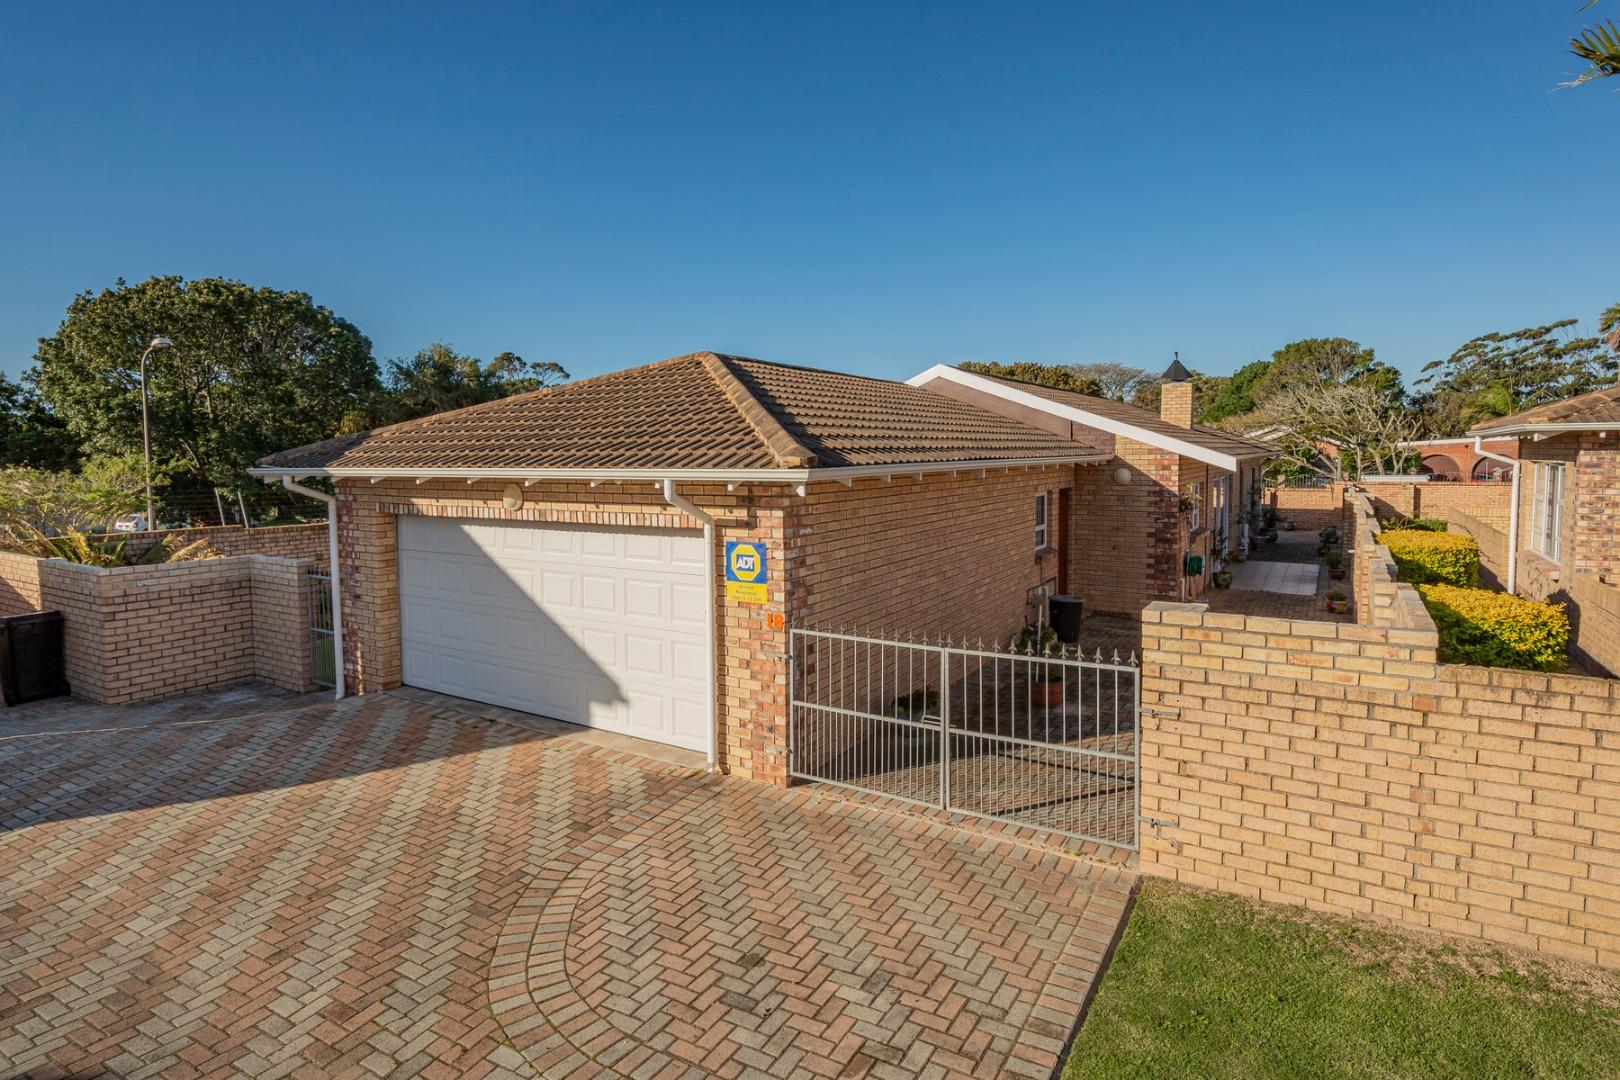 3 Bedroom Townhouse for Sale in Beverley Grove, Port Elizabeth - Eastern Cape